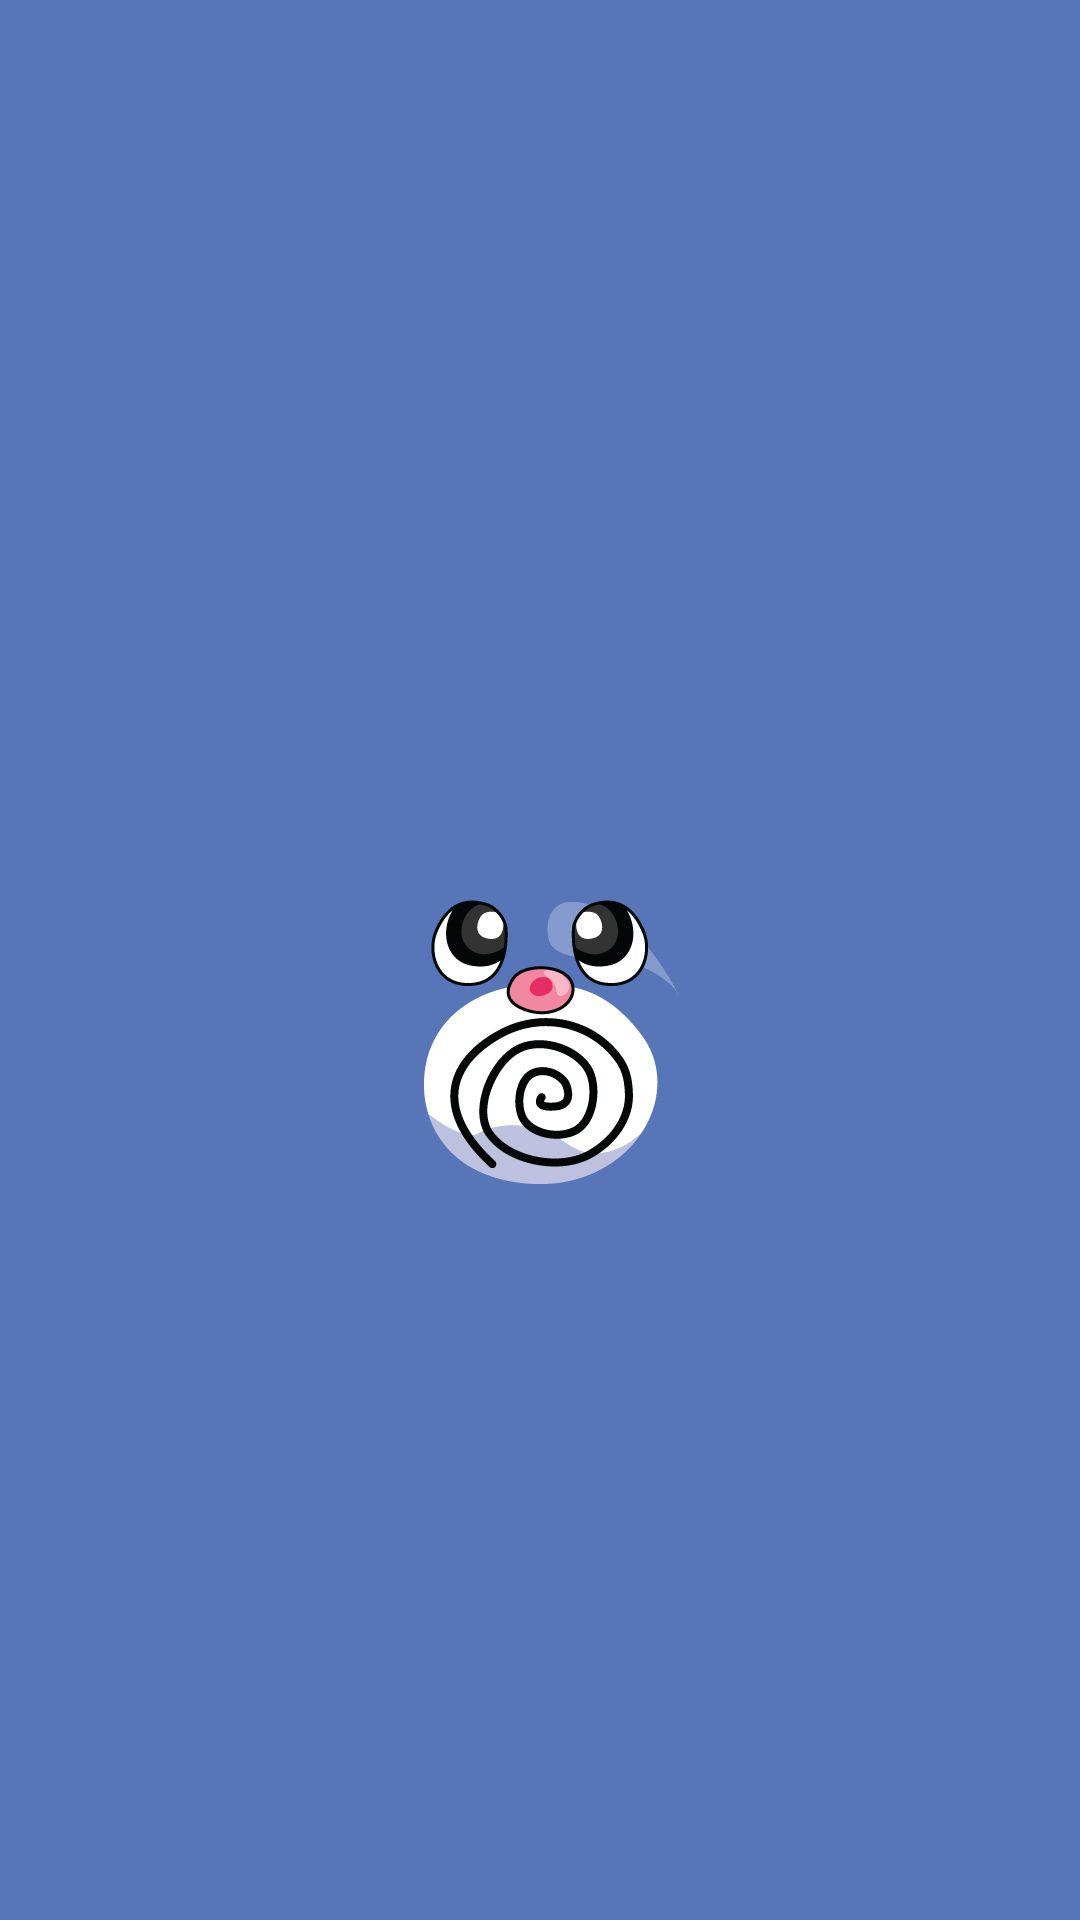 Poliwag Pokemon iPhone 6+ HD Wallpaper HD - Free Download ...